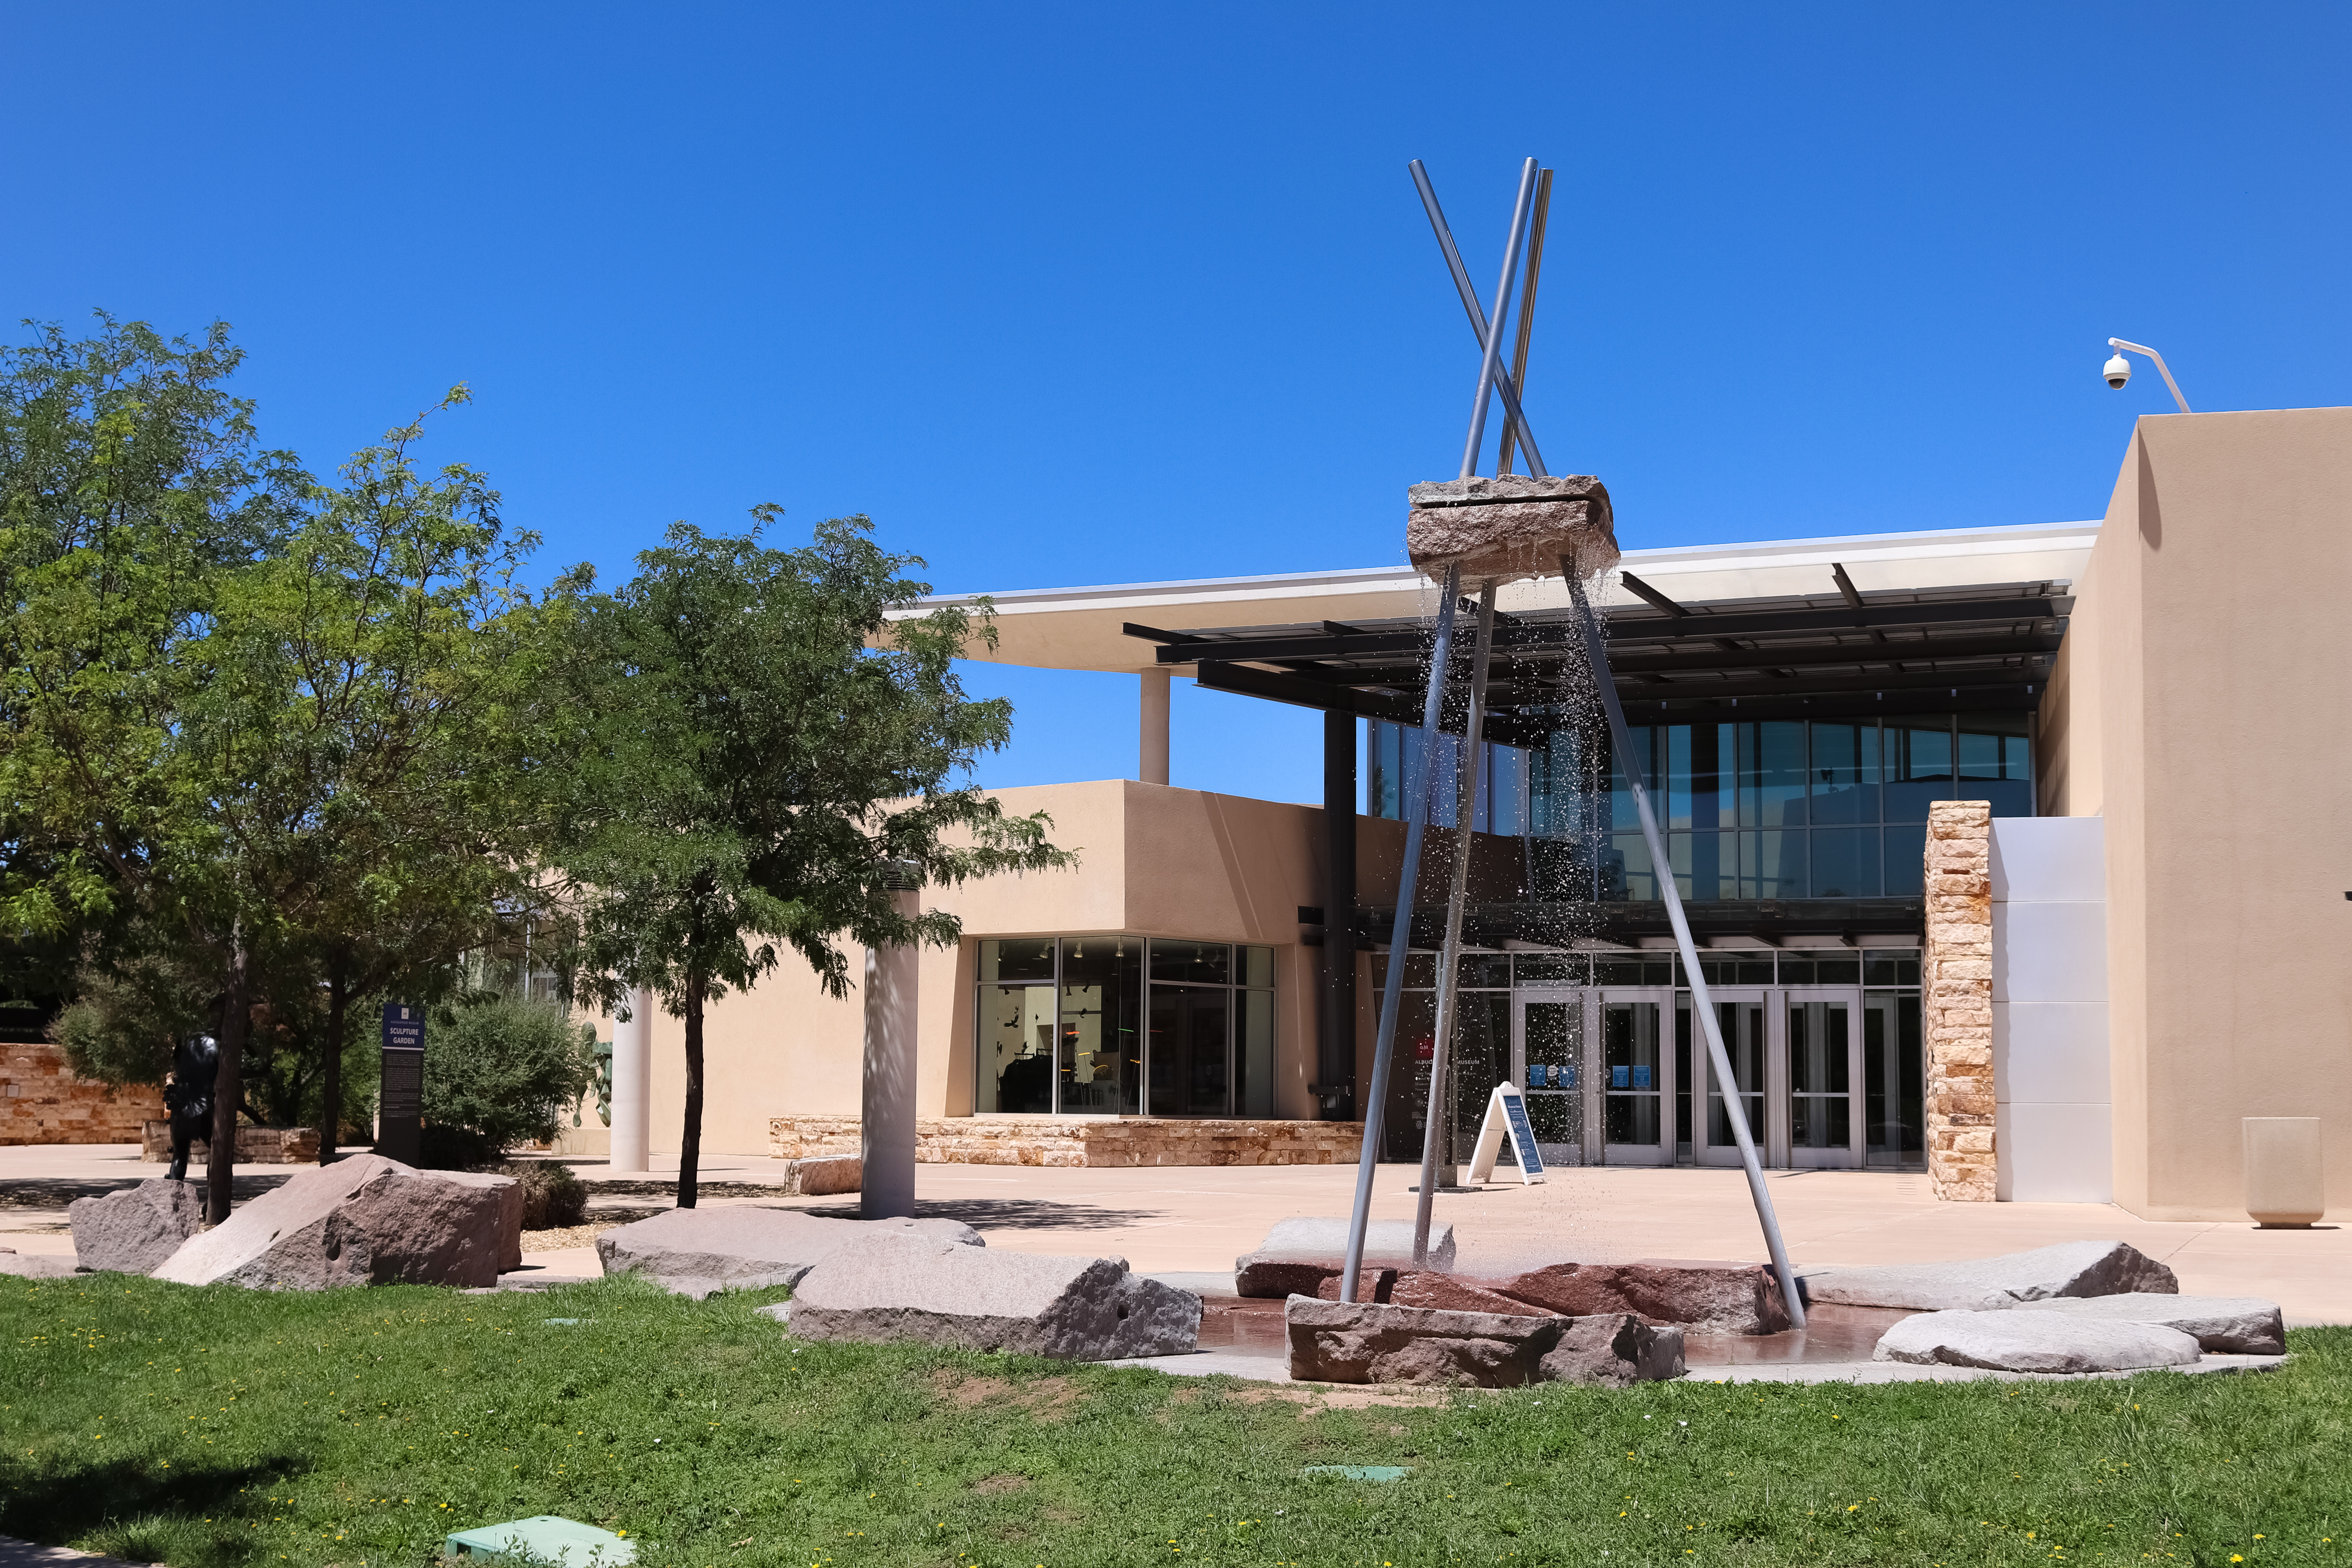 Image of the front entrance of the Albuquerque Museum.